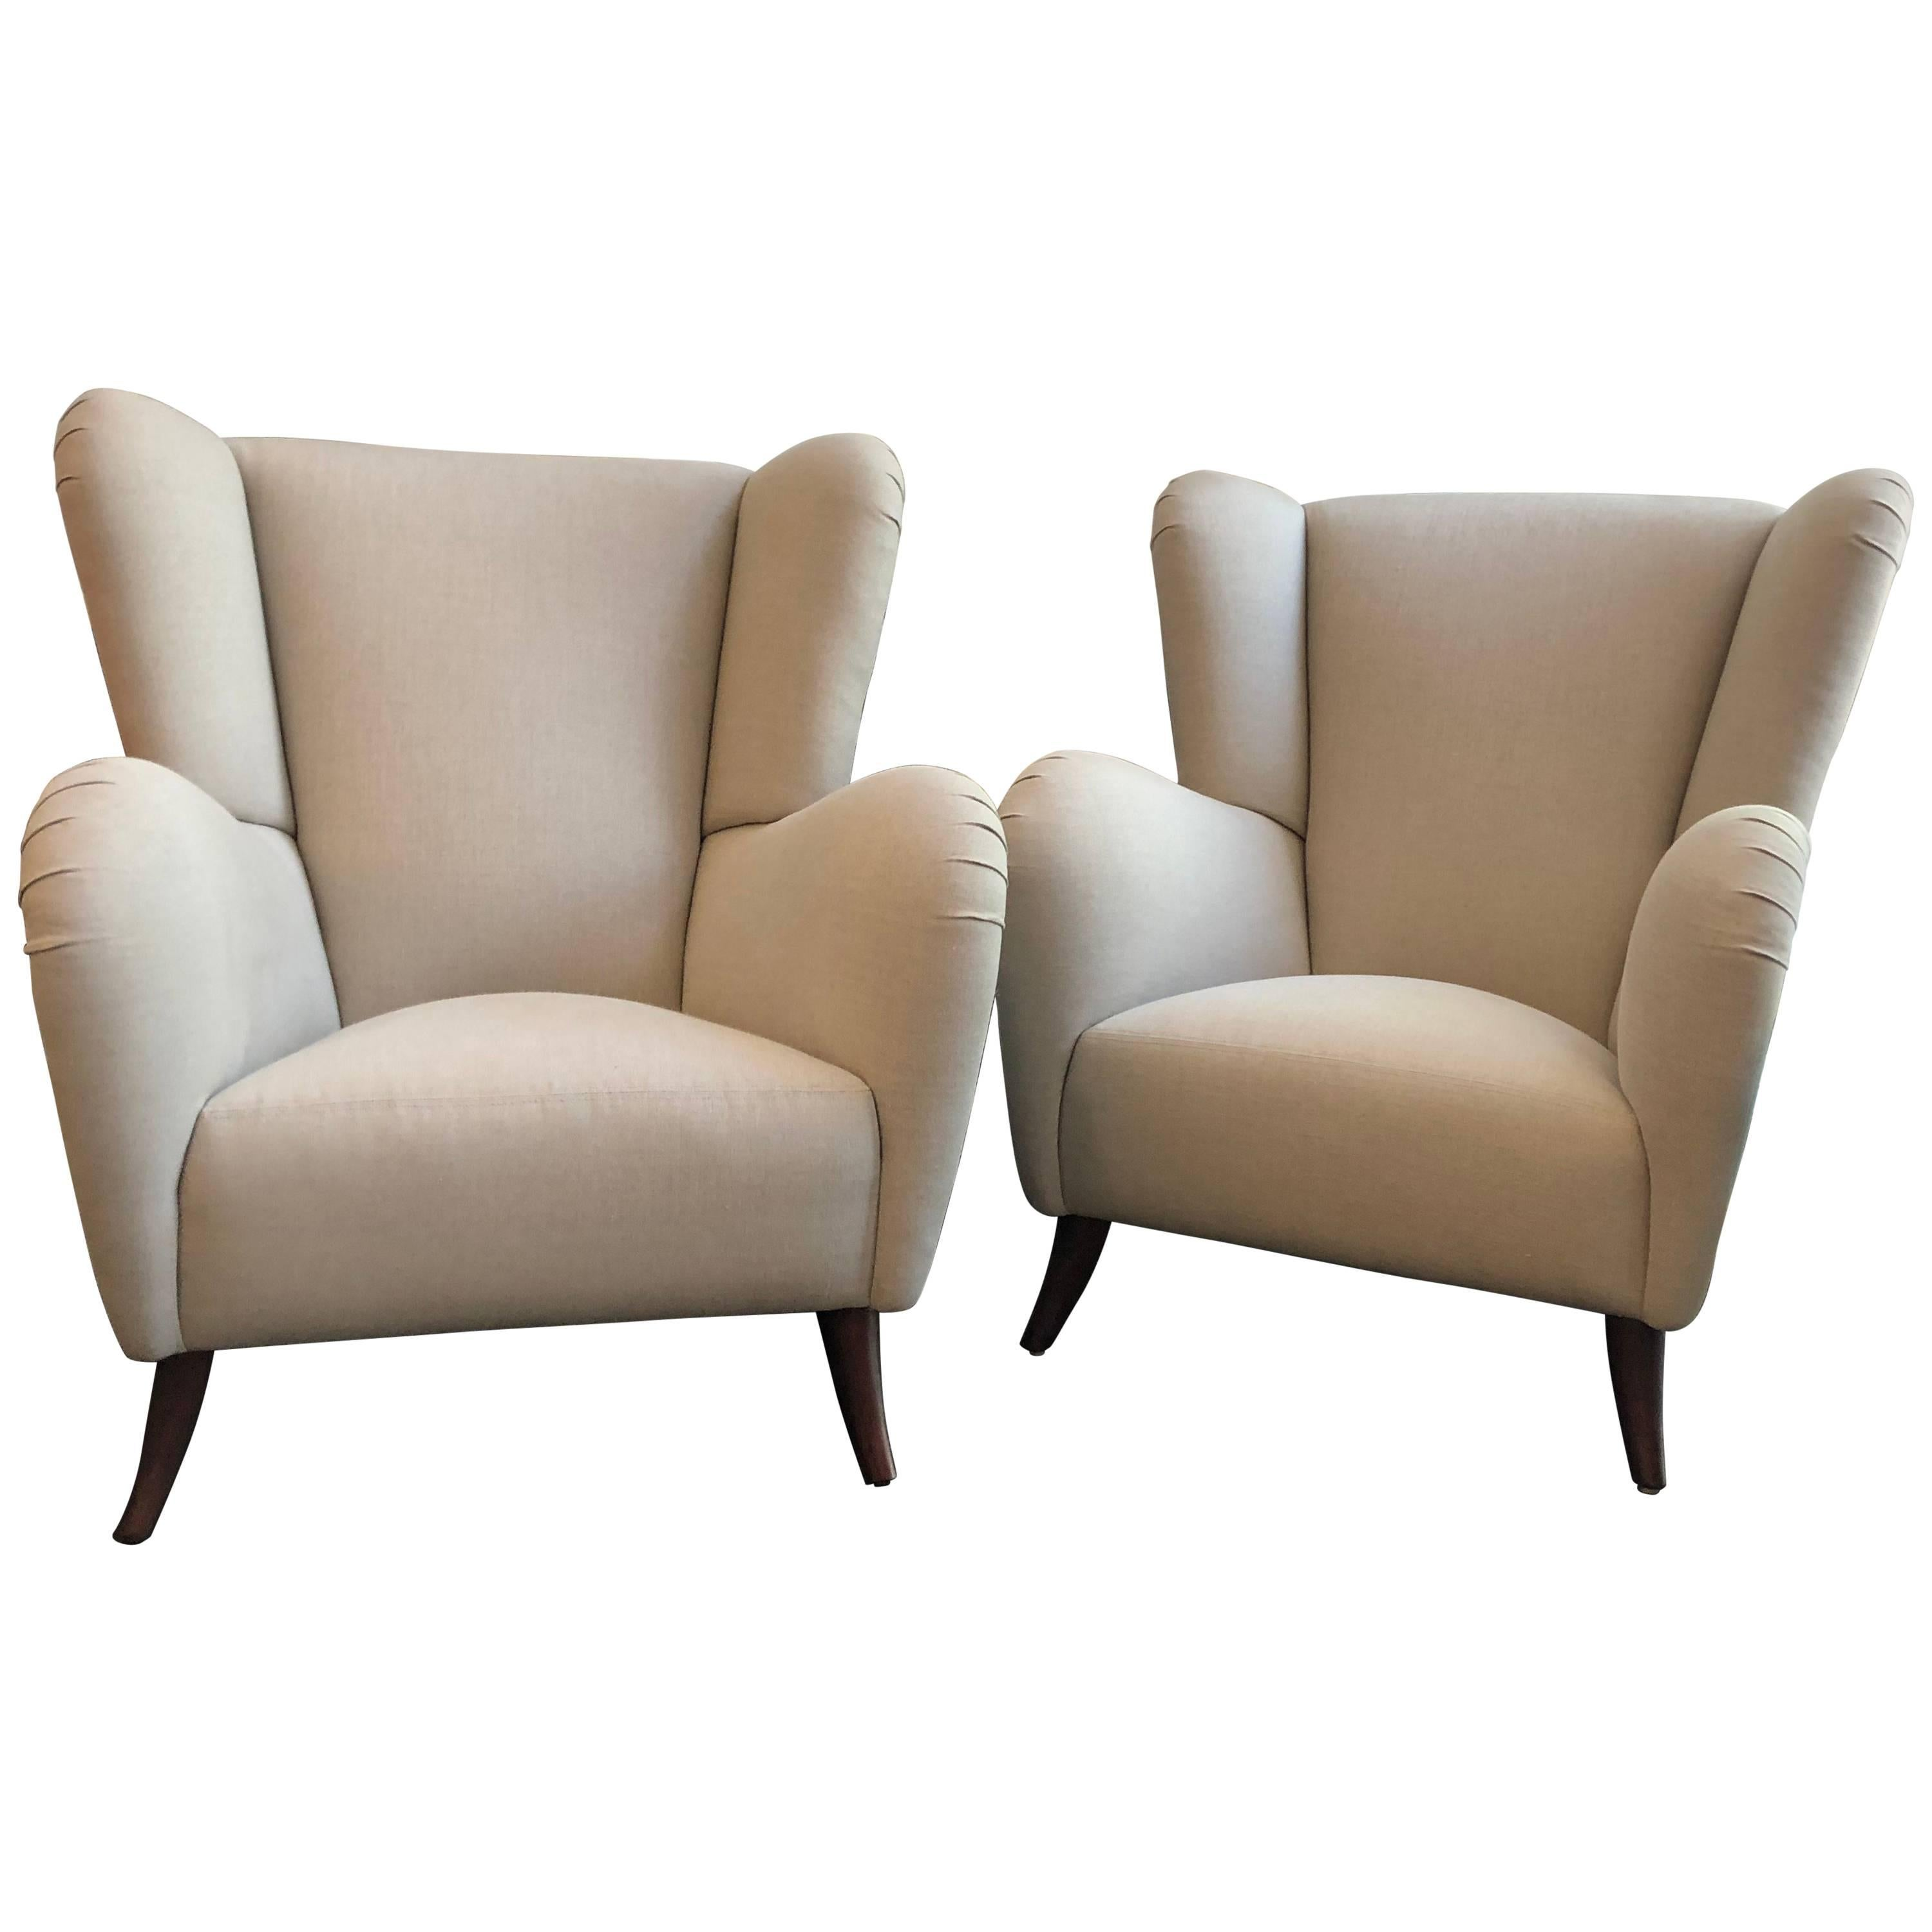 Pair of Italian Overscaled Armchairs